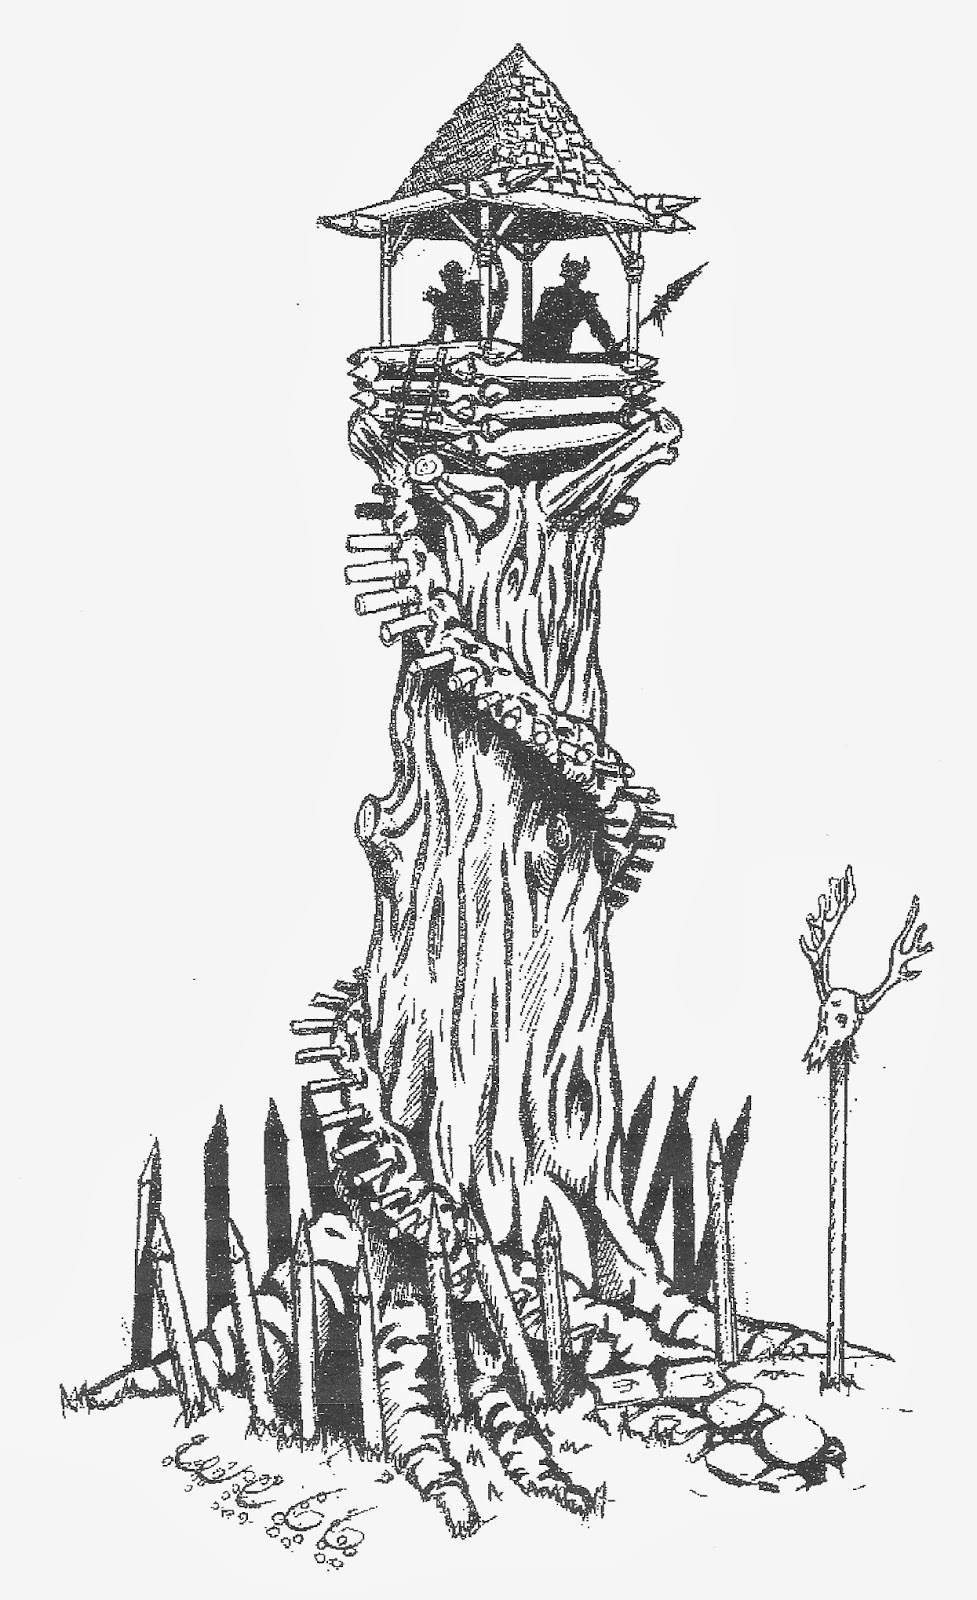 a drawing in a fantasy book